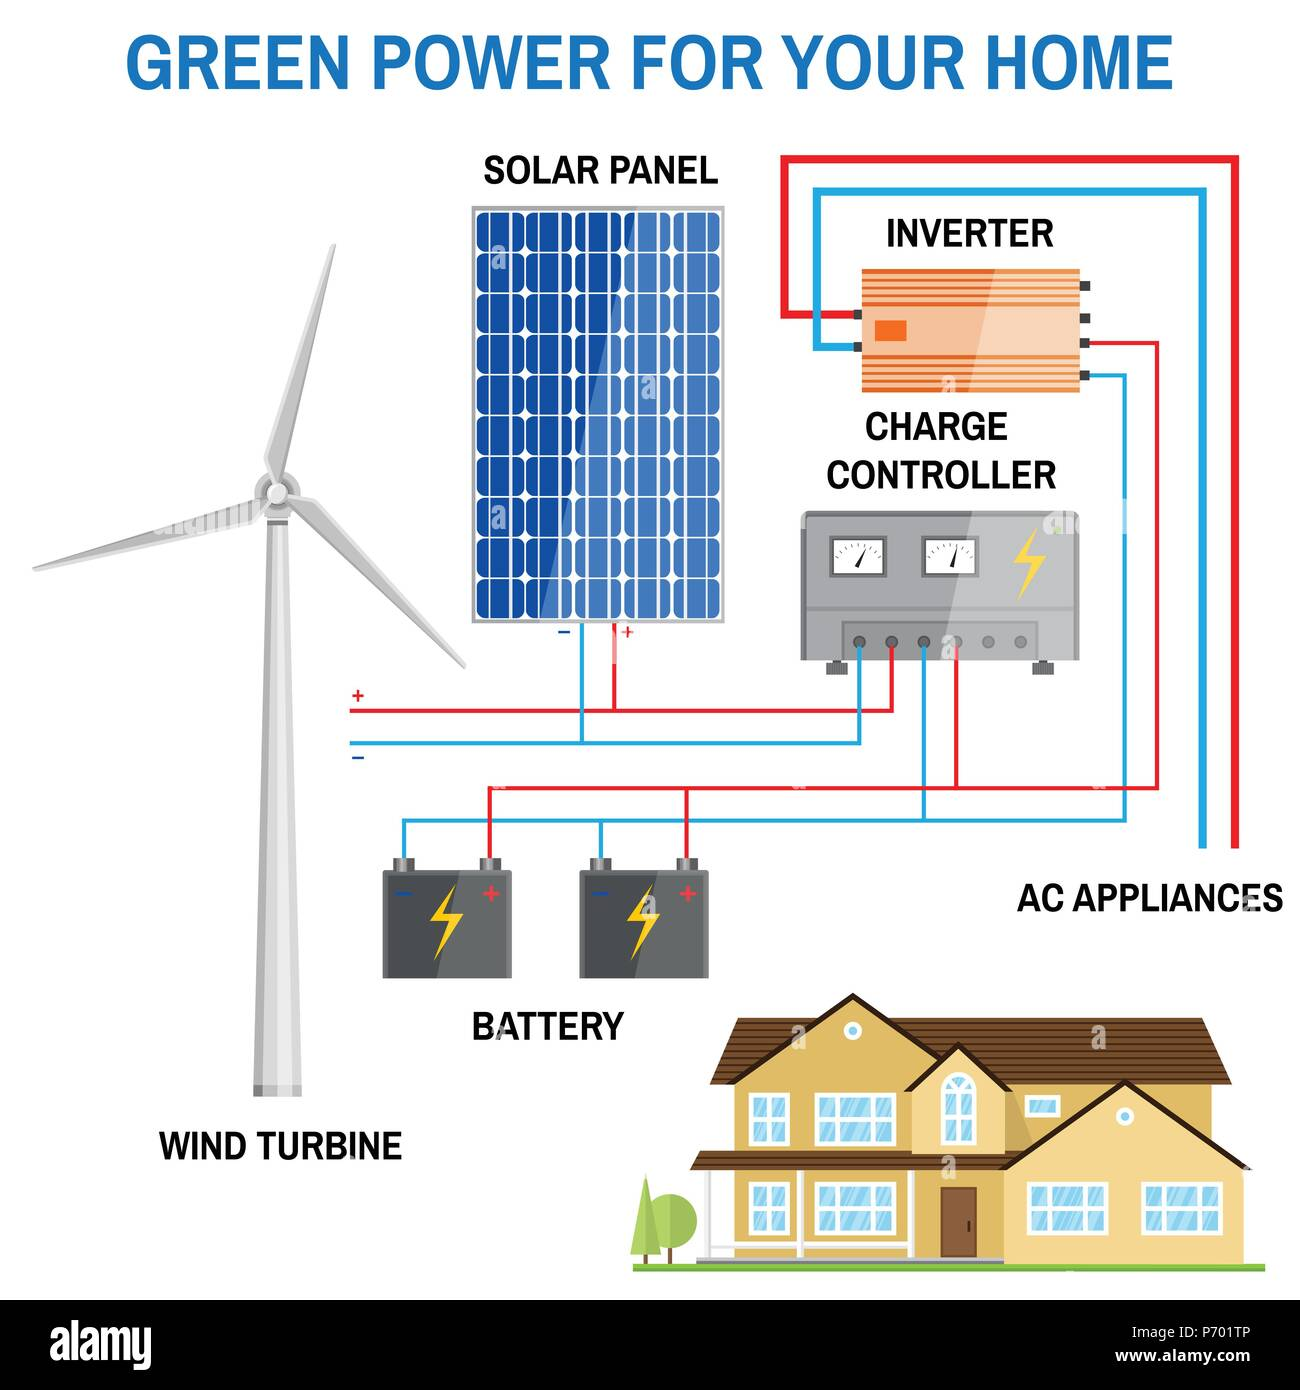 solar panel and wind power generation system for home renewablesolar panel and wind power generation system for home renewable energy concept simplified diagram of an off grid system wind turbine, solar panel,